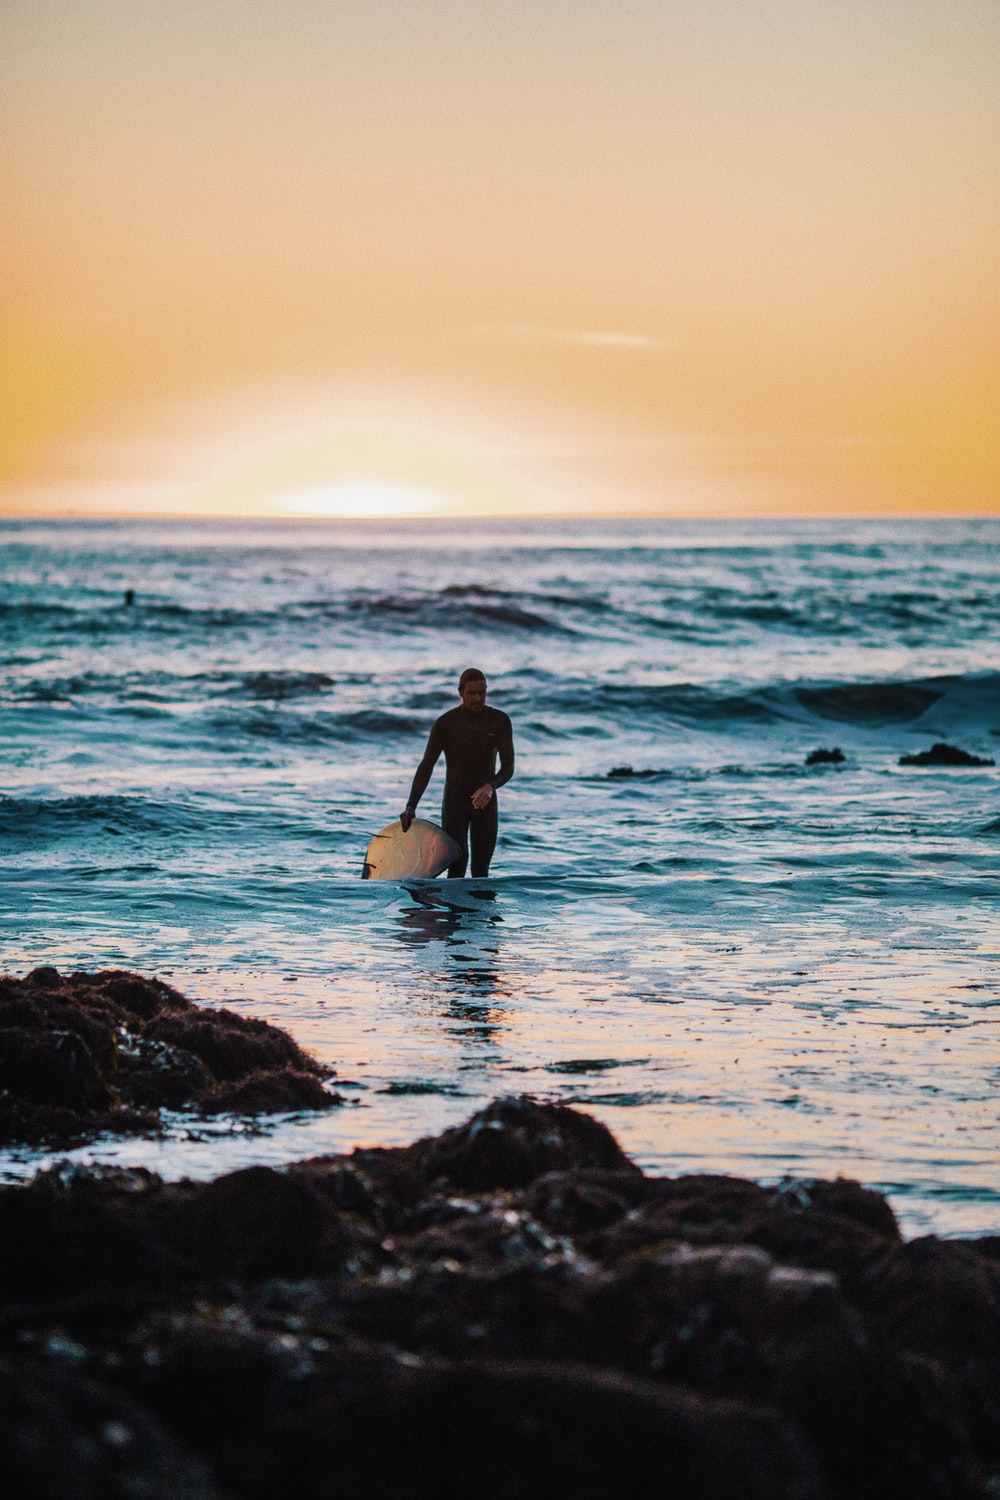 man holding surfboard at beach during daytime